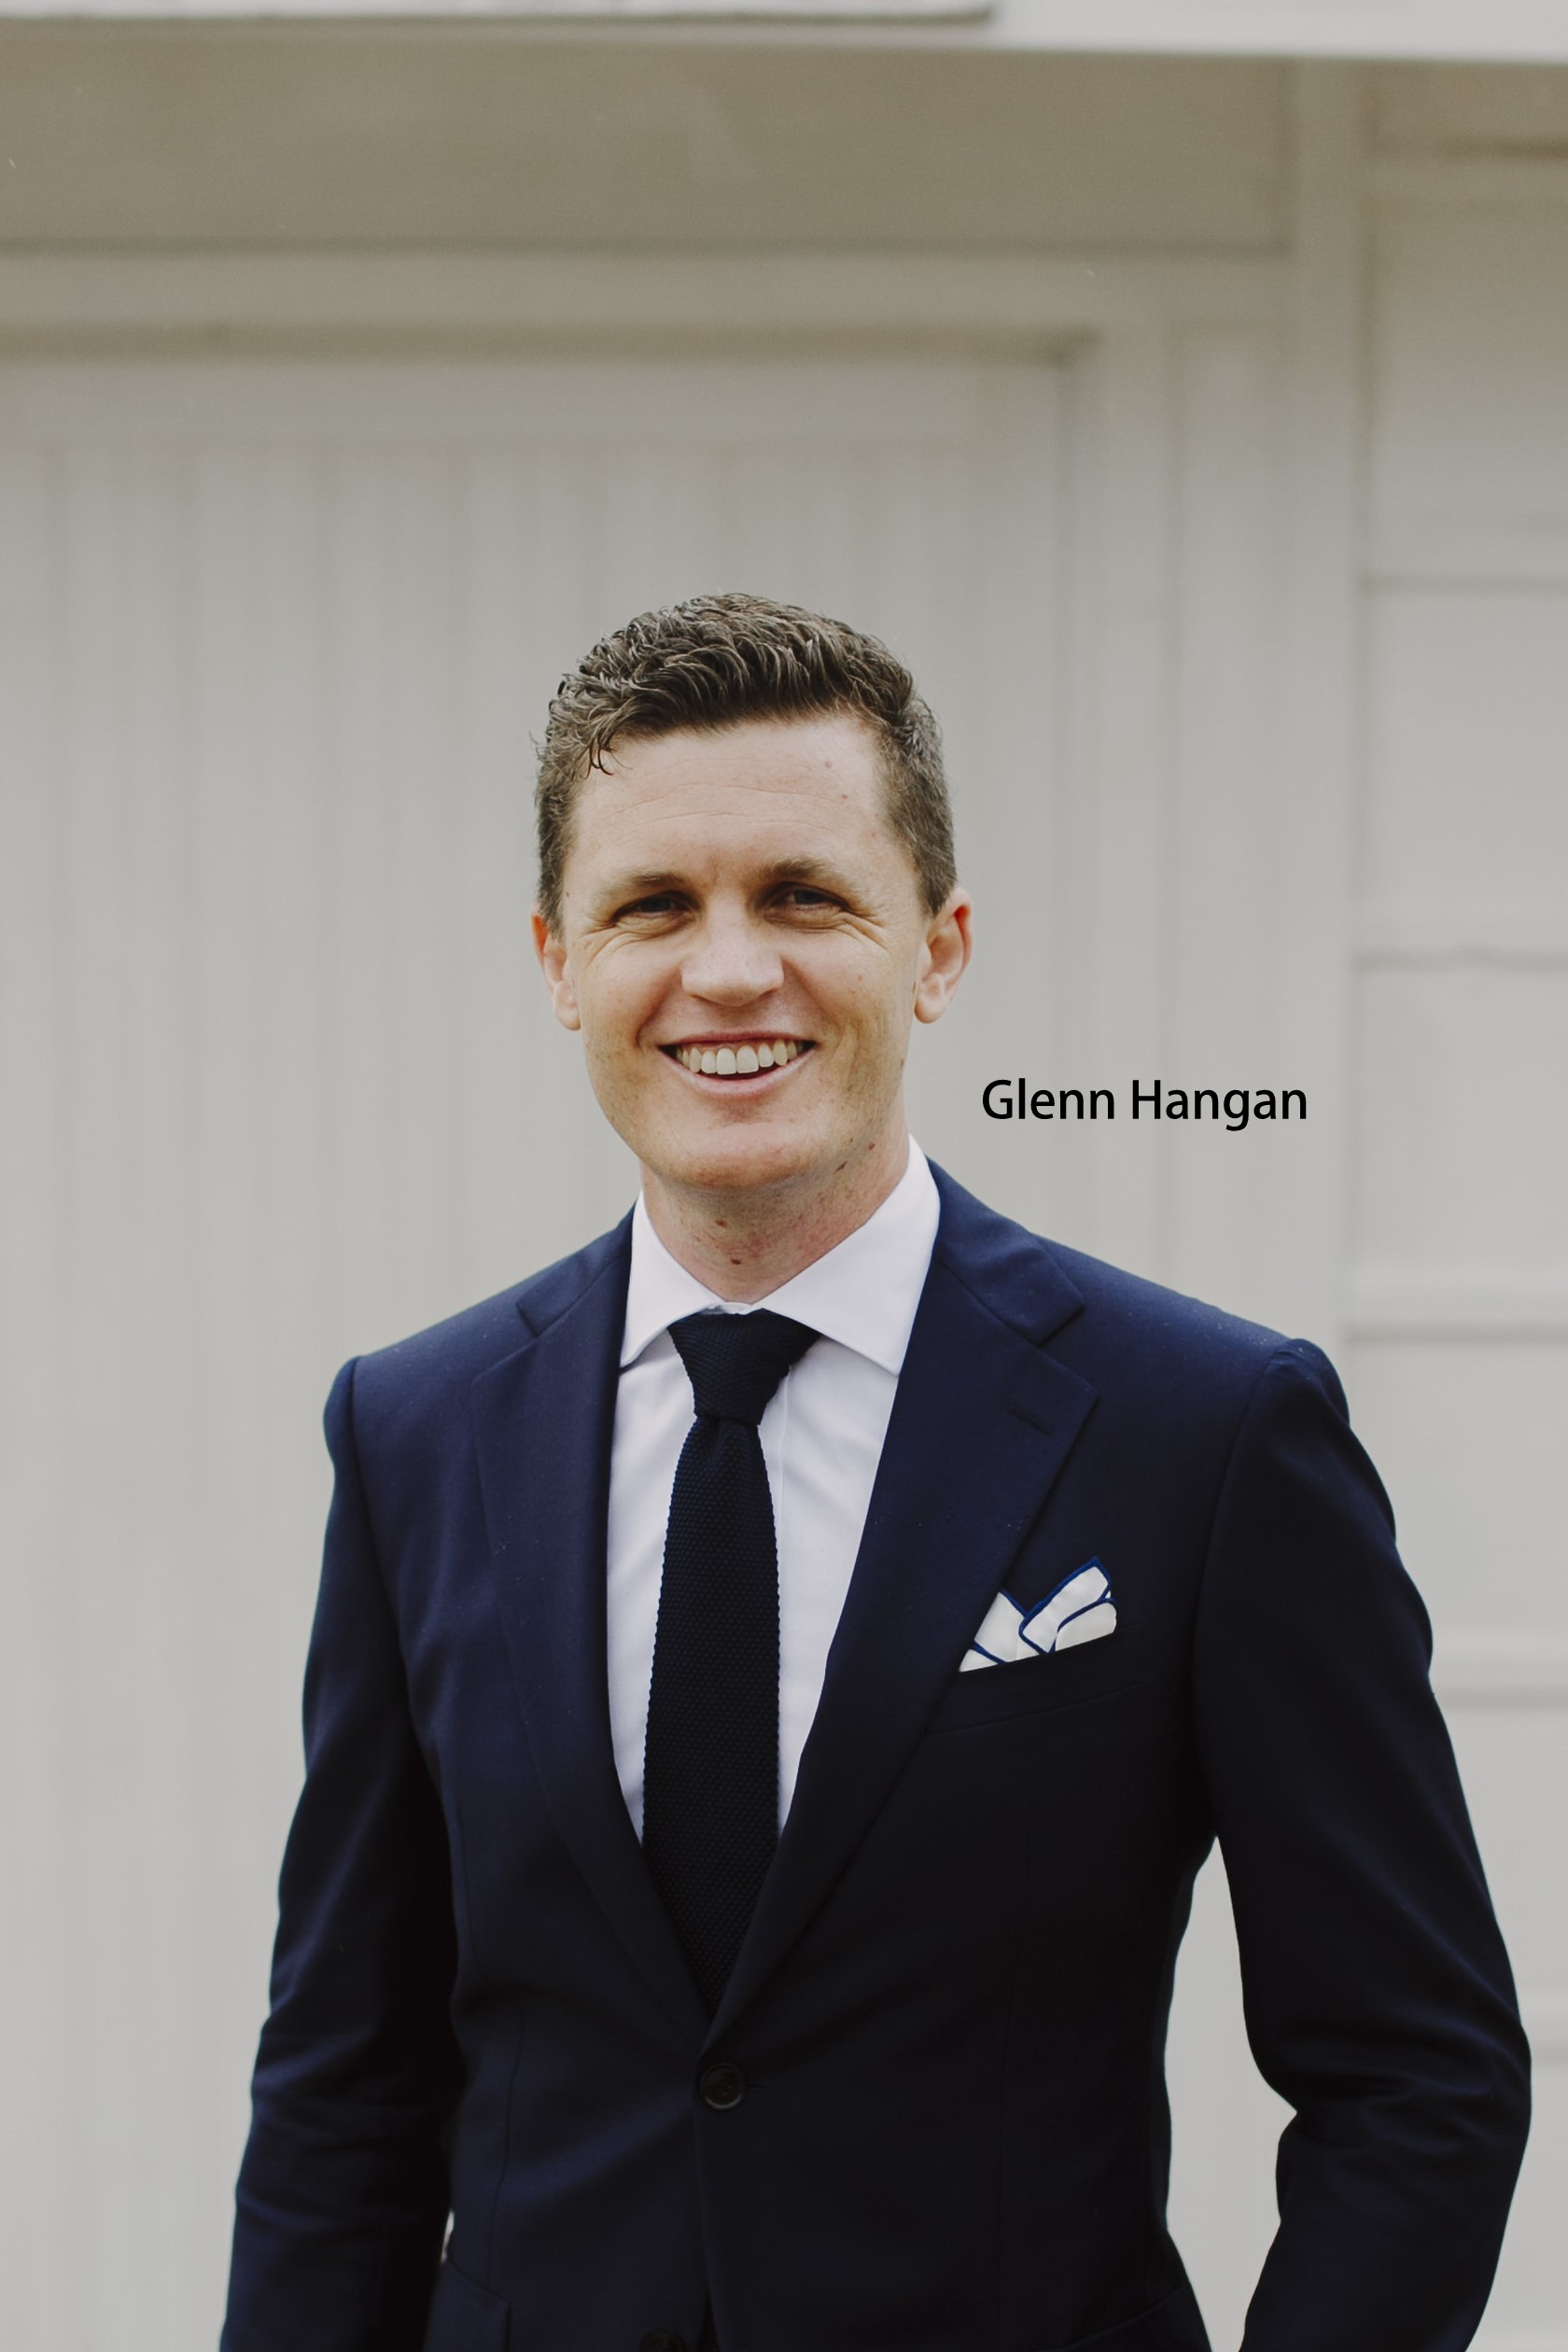 Glenn Hangan – Millennial & Emerging Leader, Dimension Data